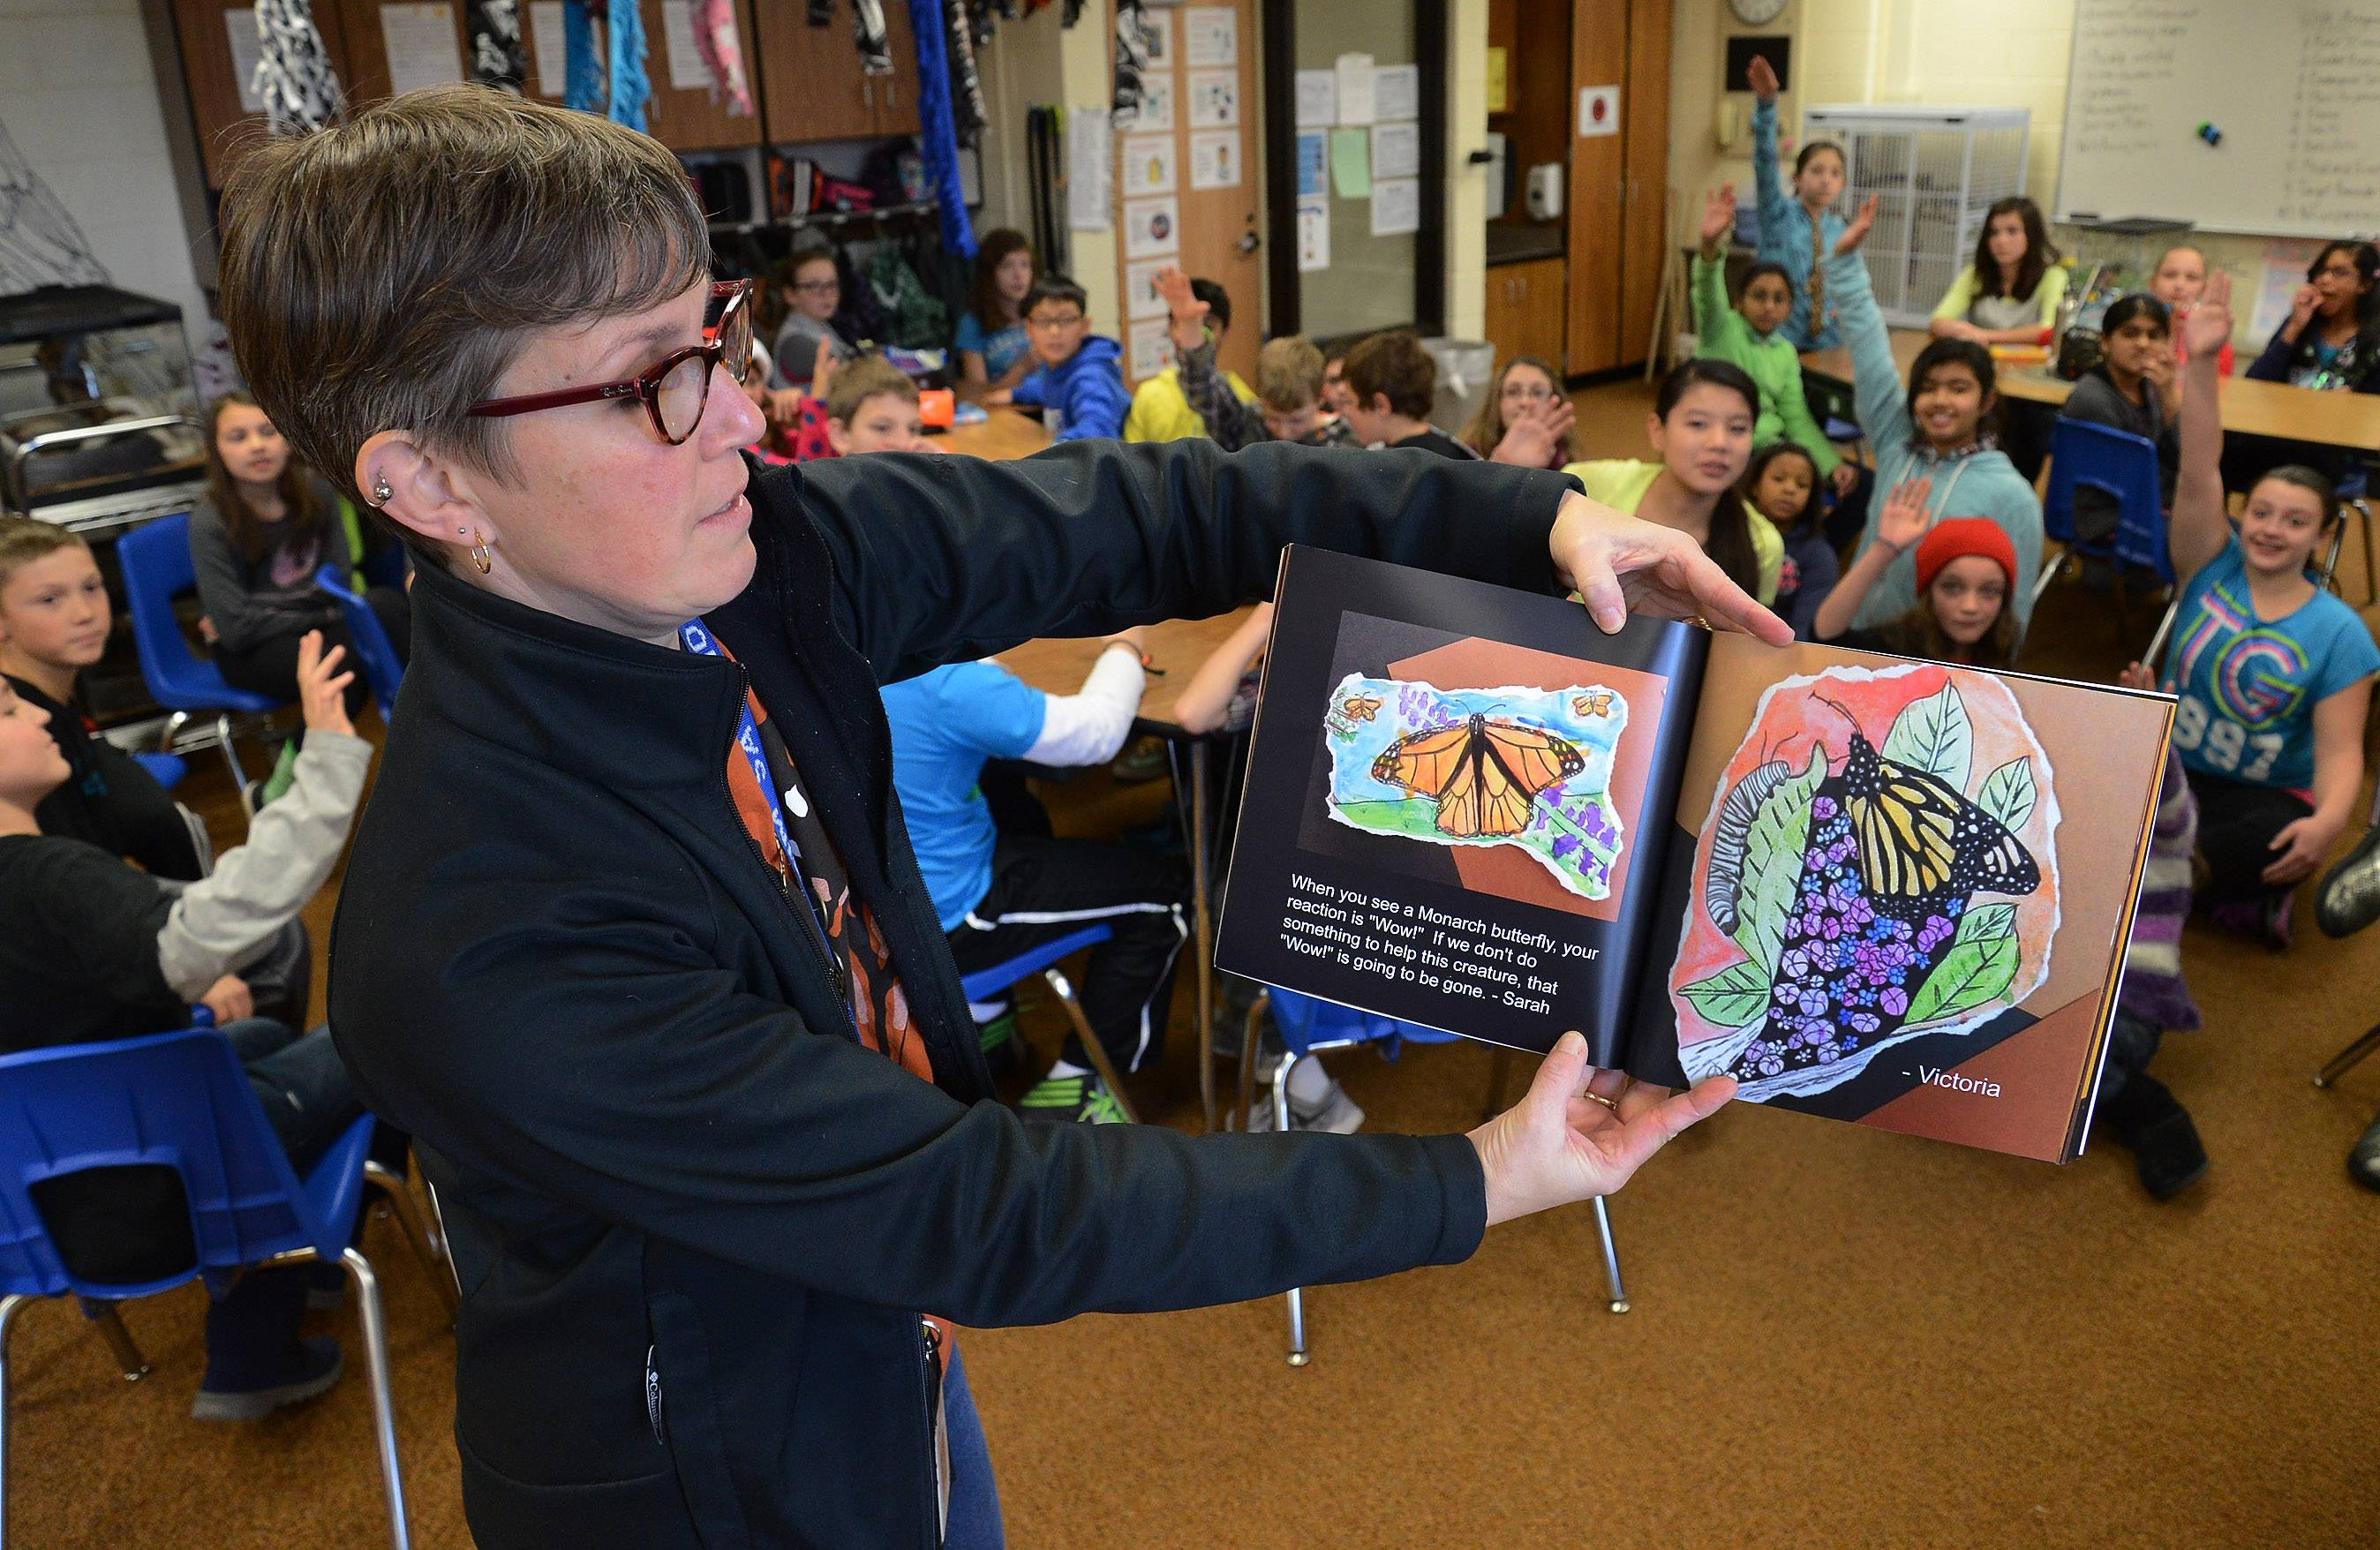 Kim Savino's fifth- and sixth-grade classes at Michael Collins Elementary School in Schaumburg are working on a monarch butterfly project, which included production of this book, which is being sold as a fundraiser.